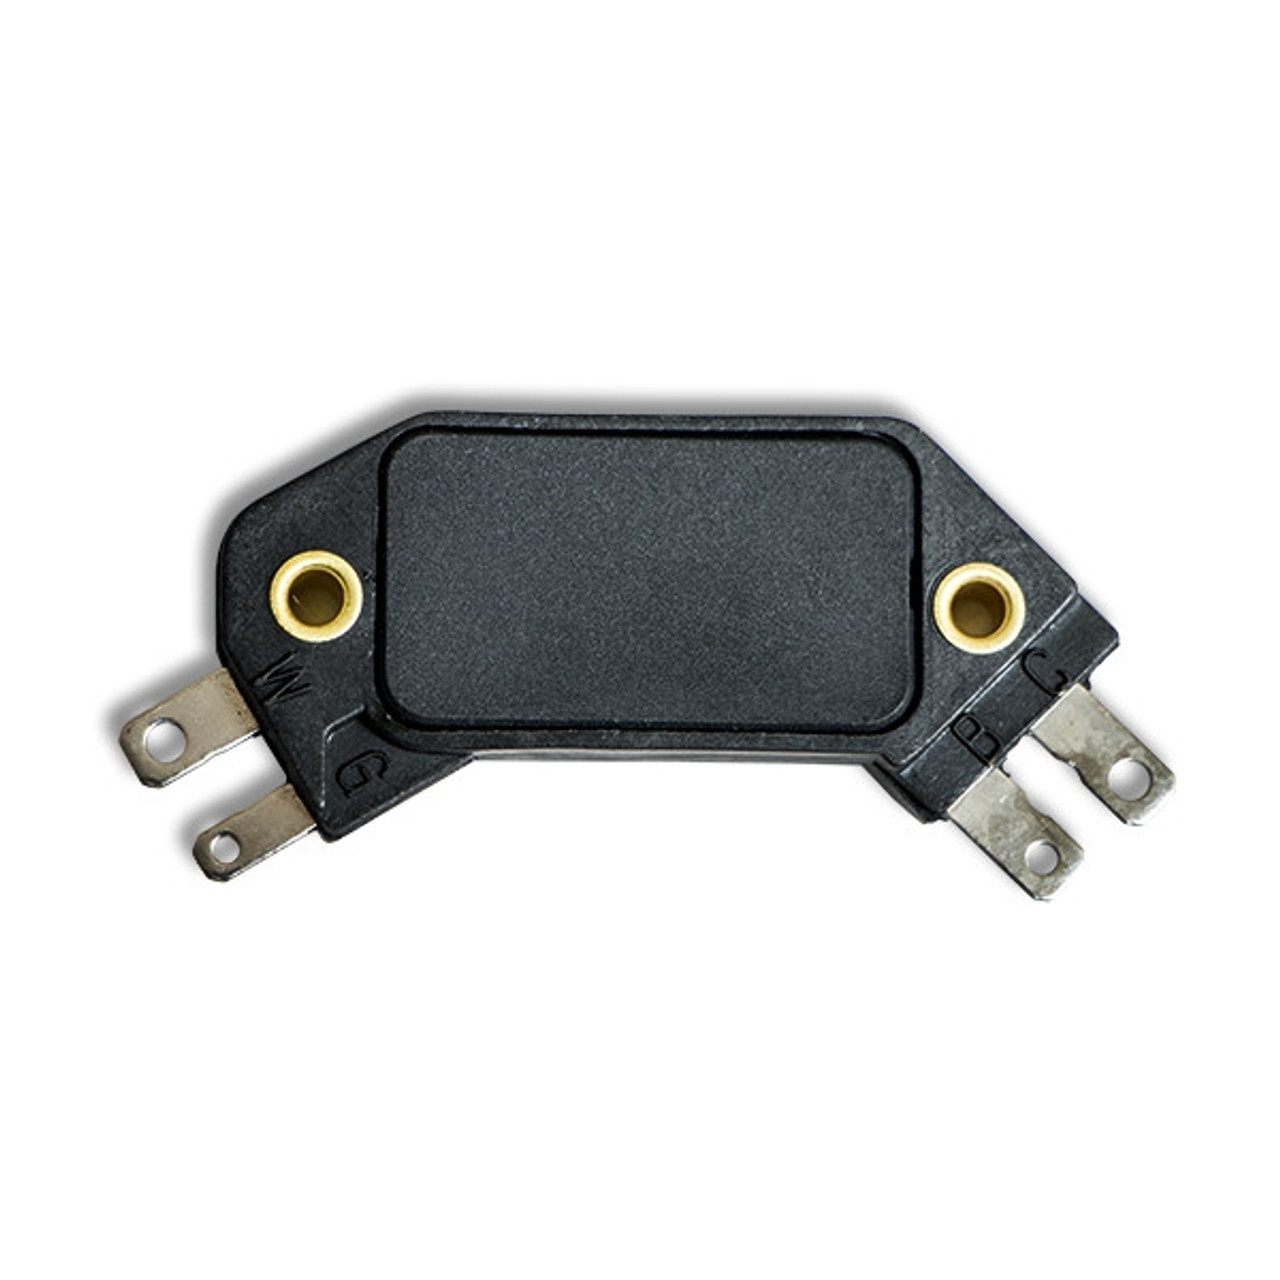 HEI Ignition module, 4 pin